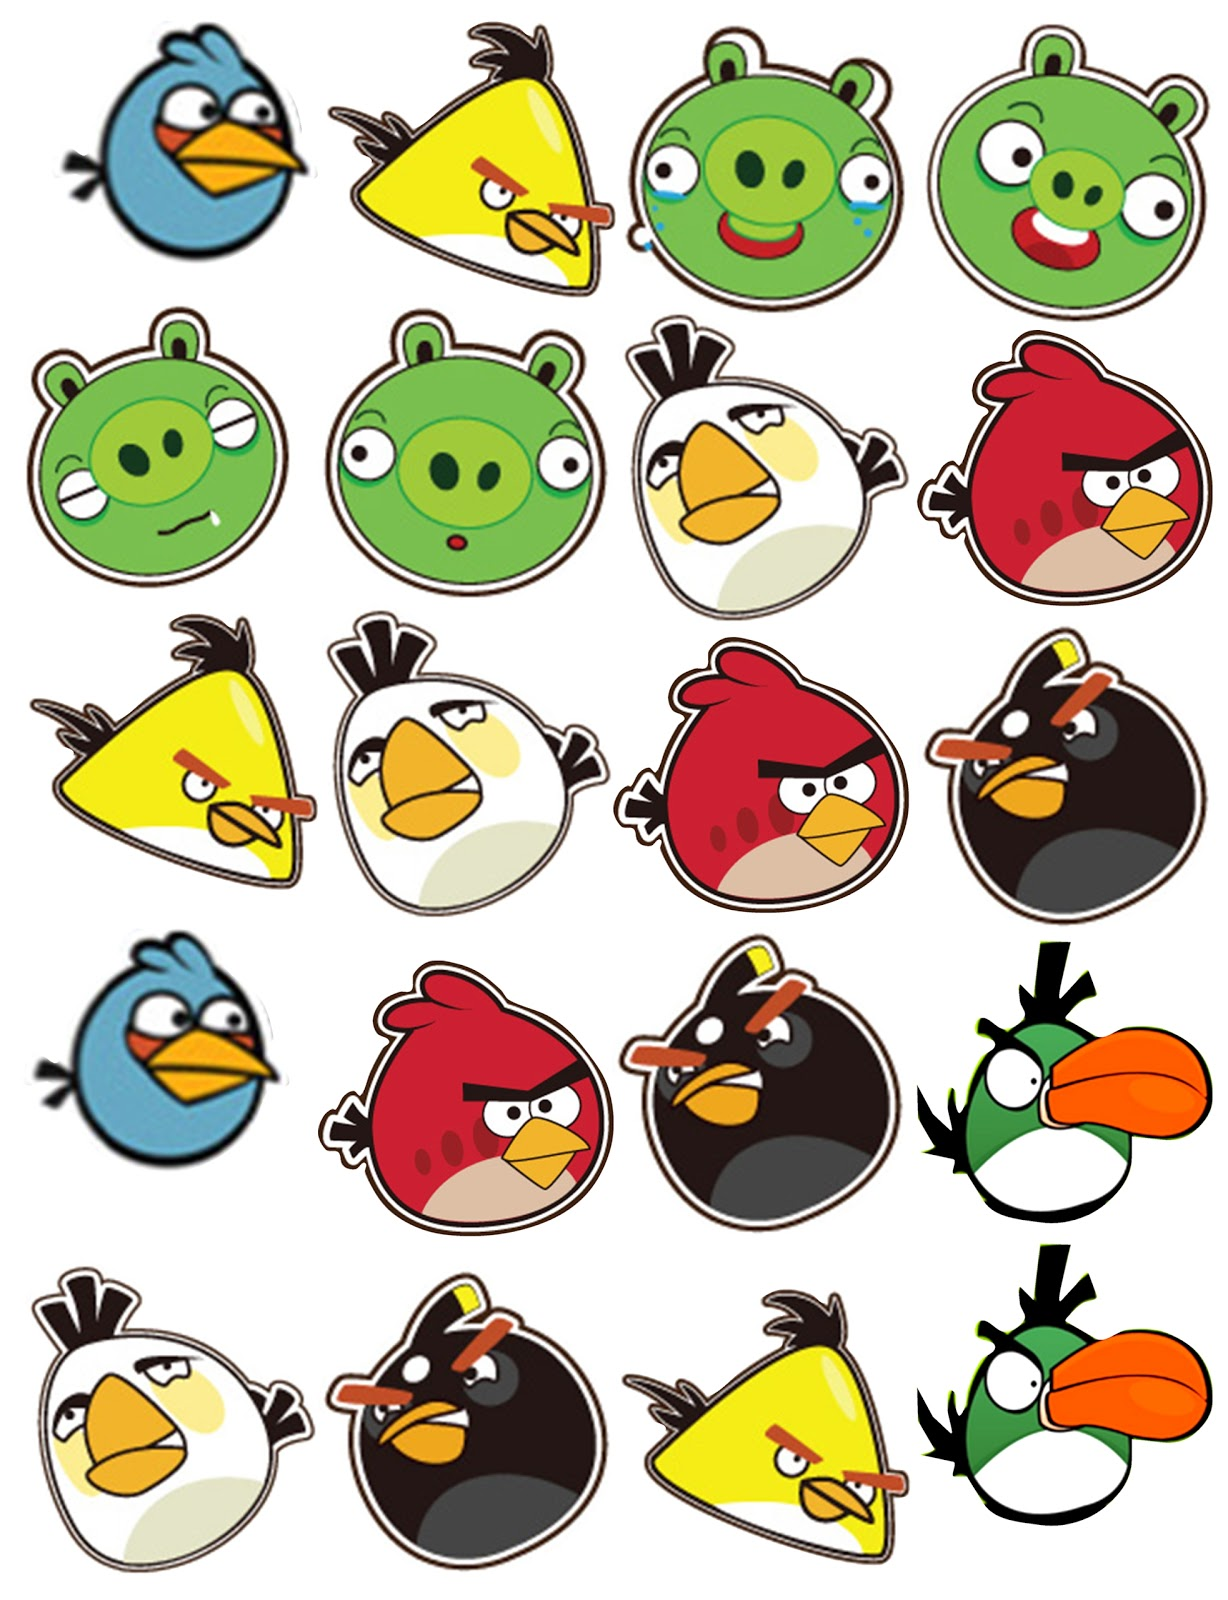 angry birds images to print -#main